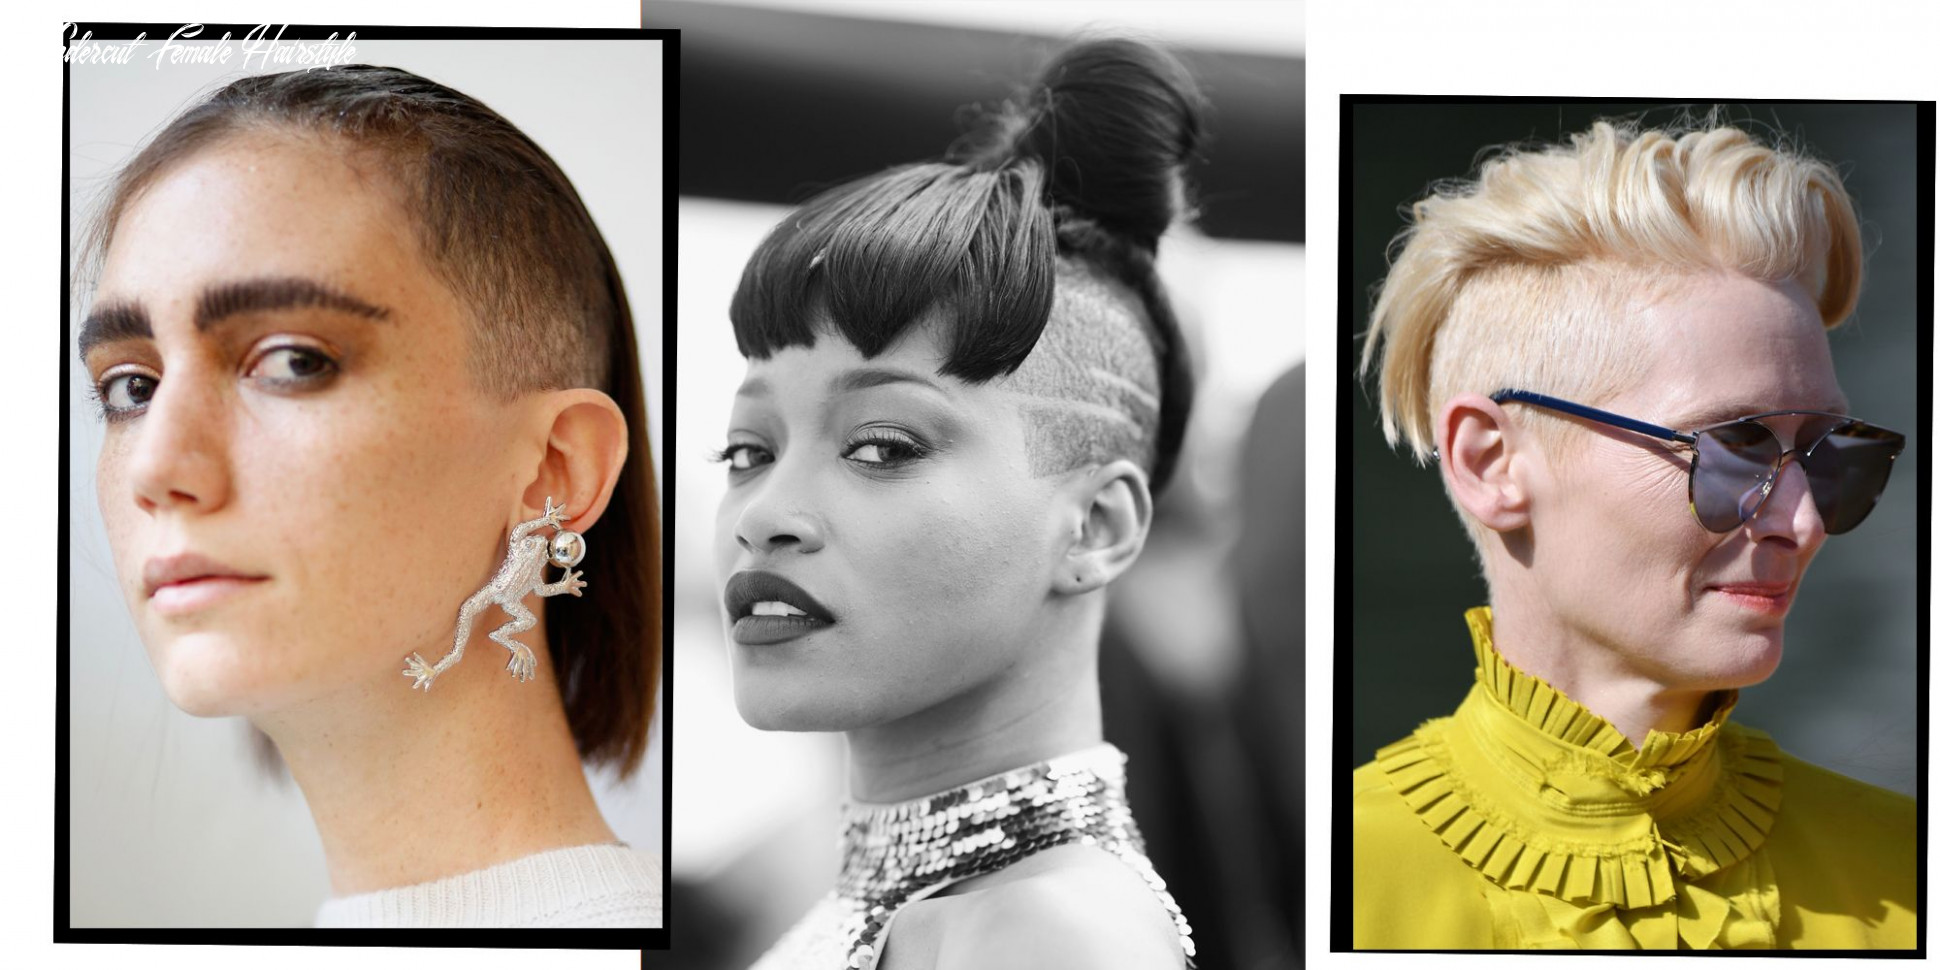 9 undercut hairstyles for women proving shaven heads are